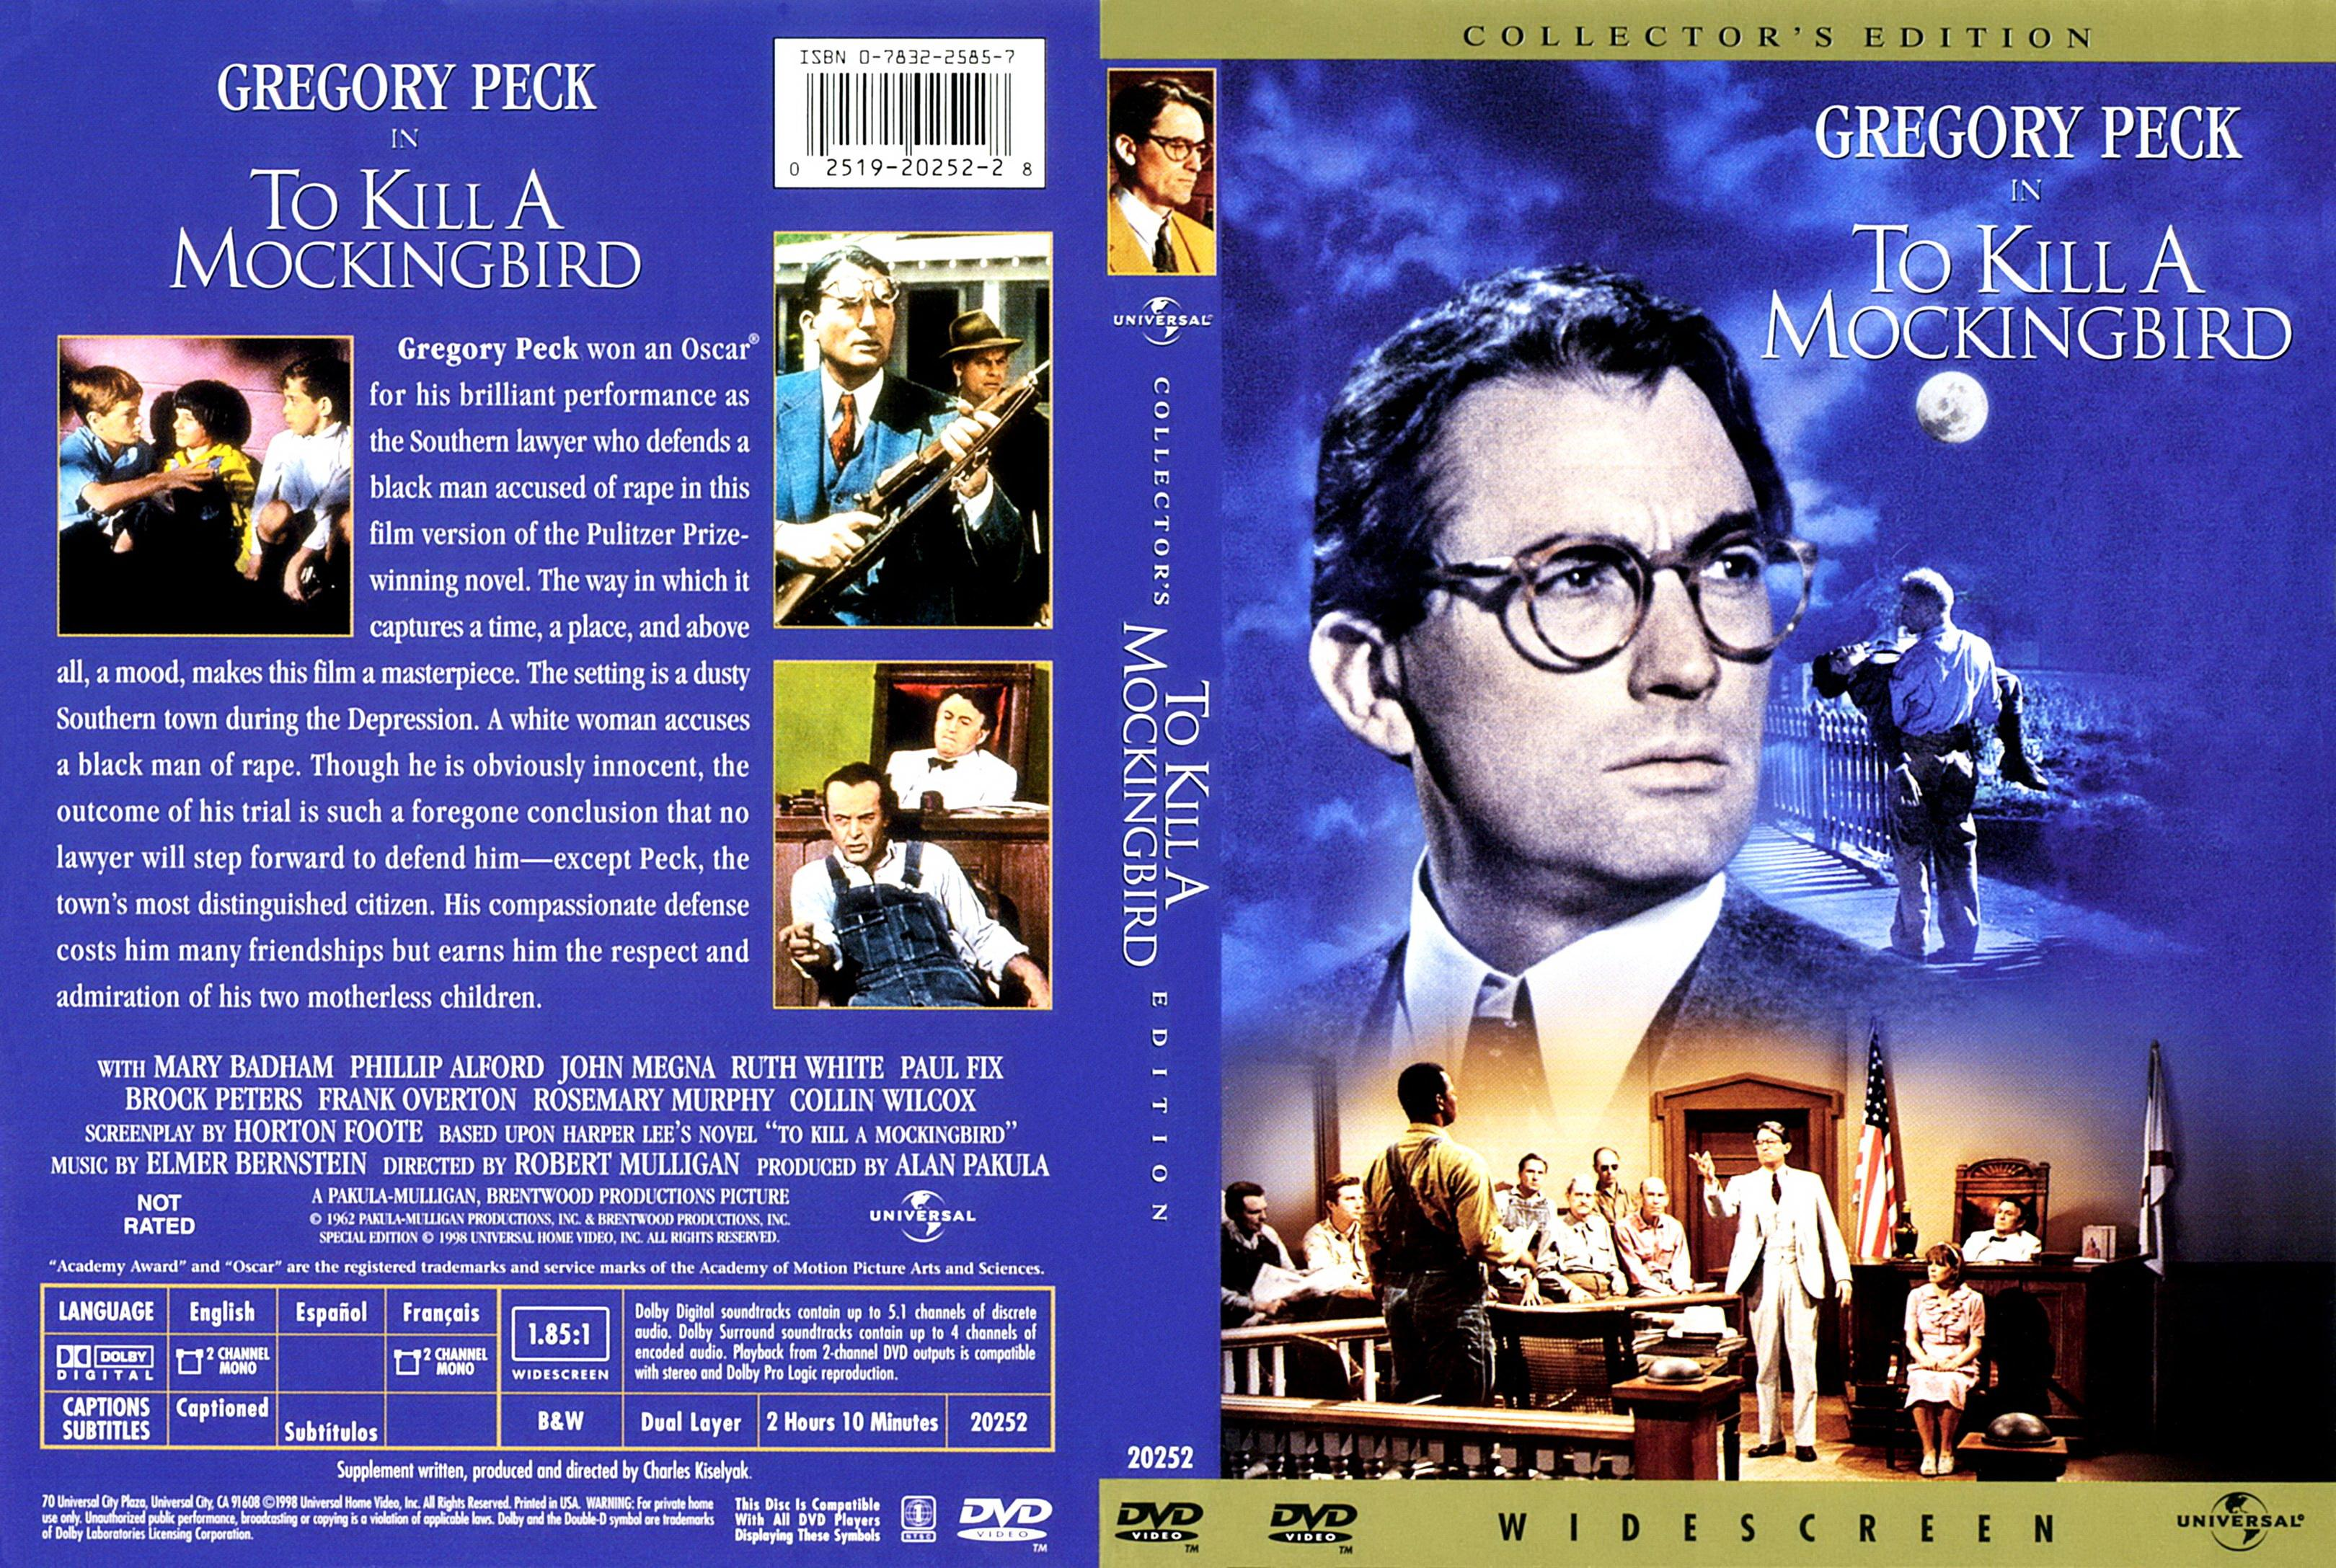 To kill a mockingbird whole movie